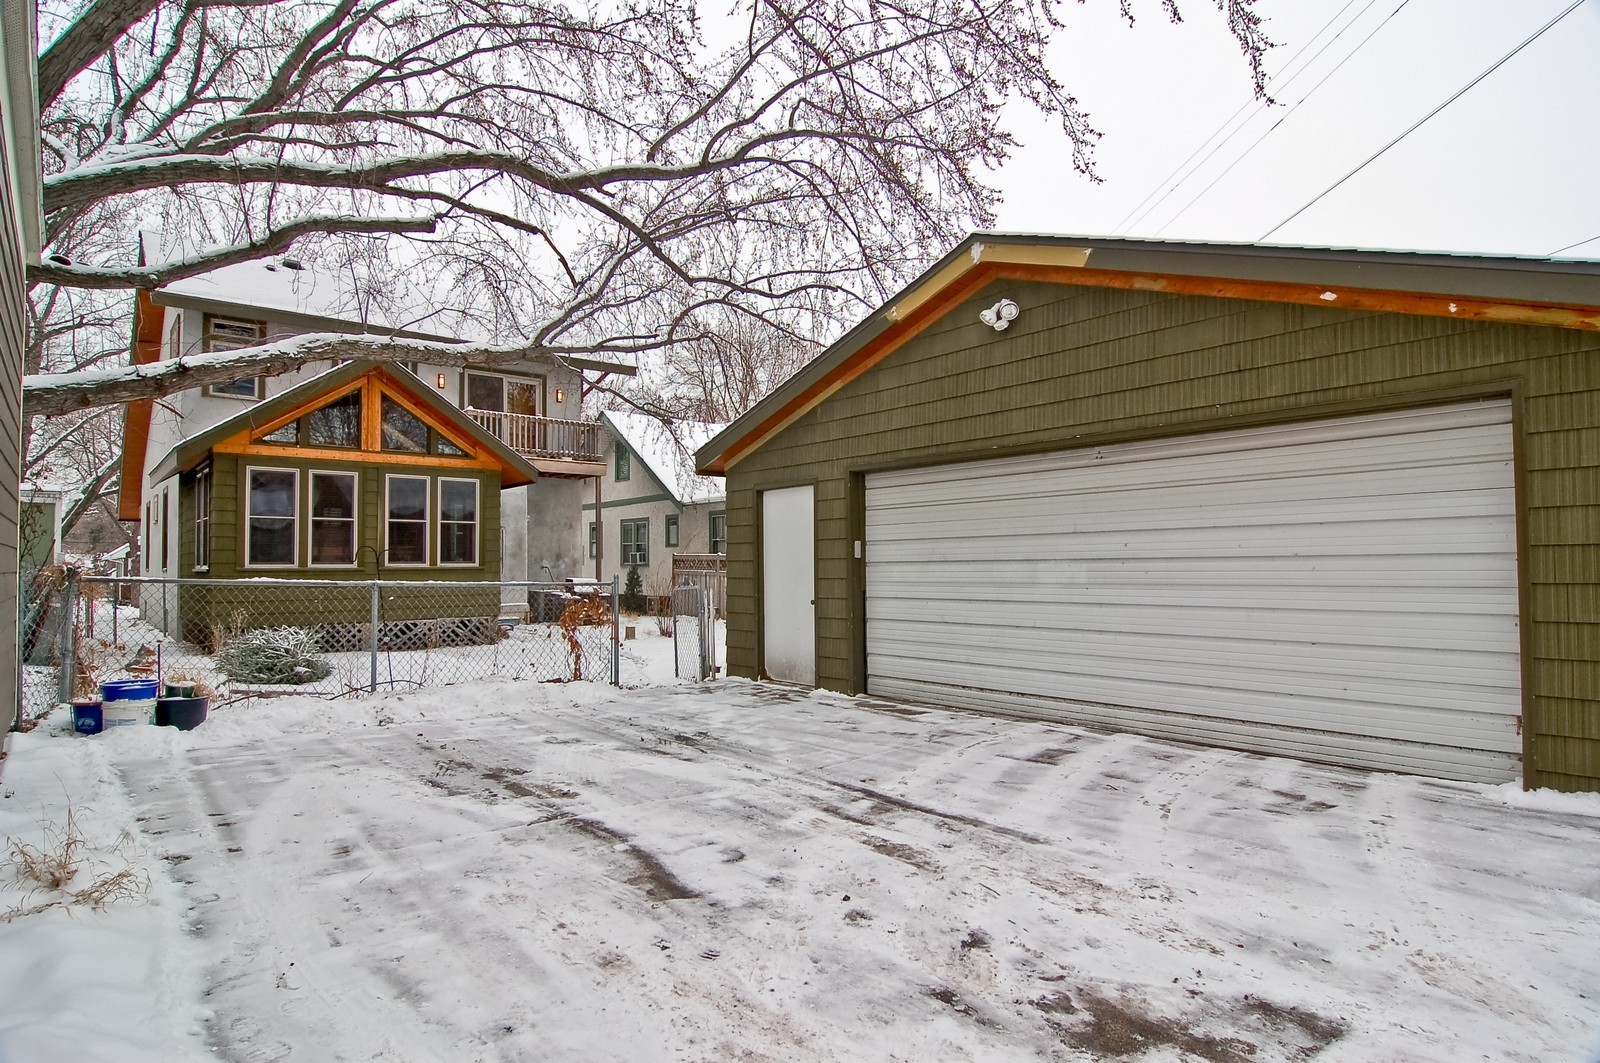 Real Estate Photography - 5012 Upton Avenue South, Minneapolis, MN, 55410 - Rear View